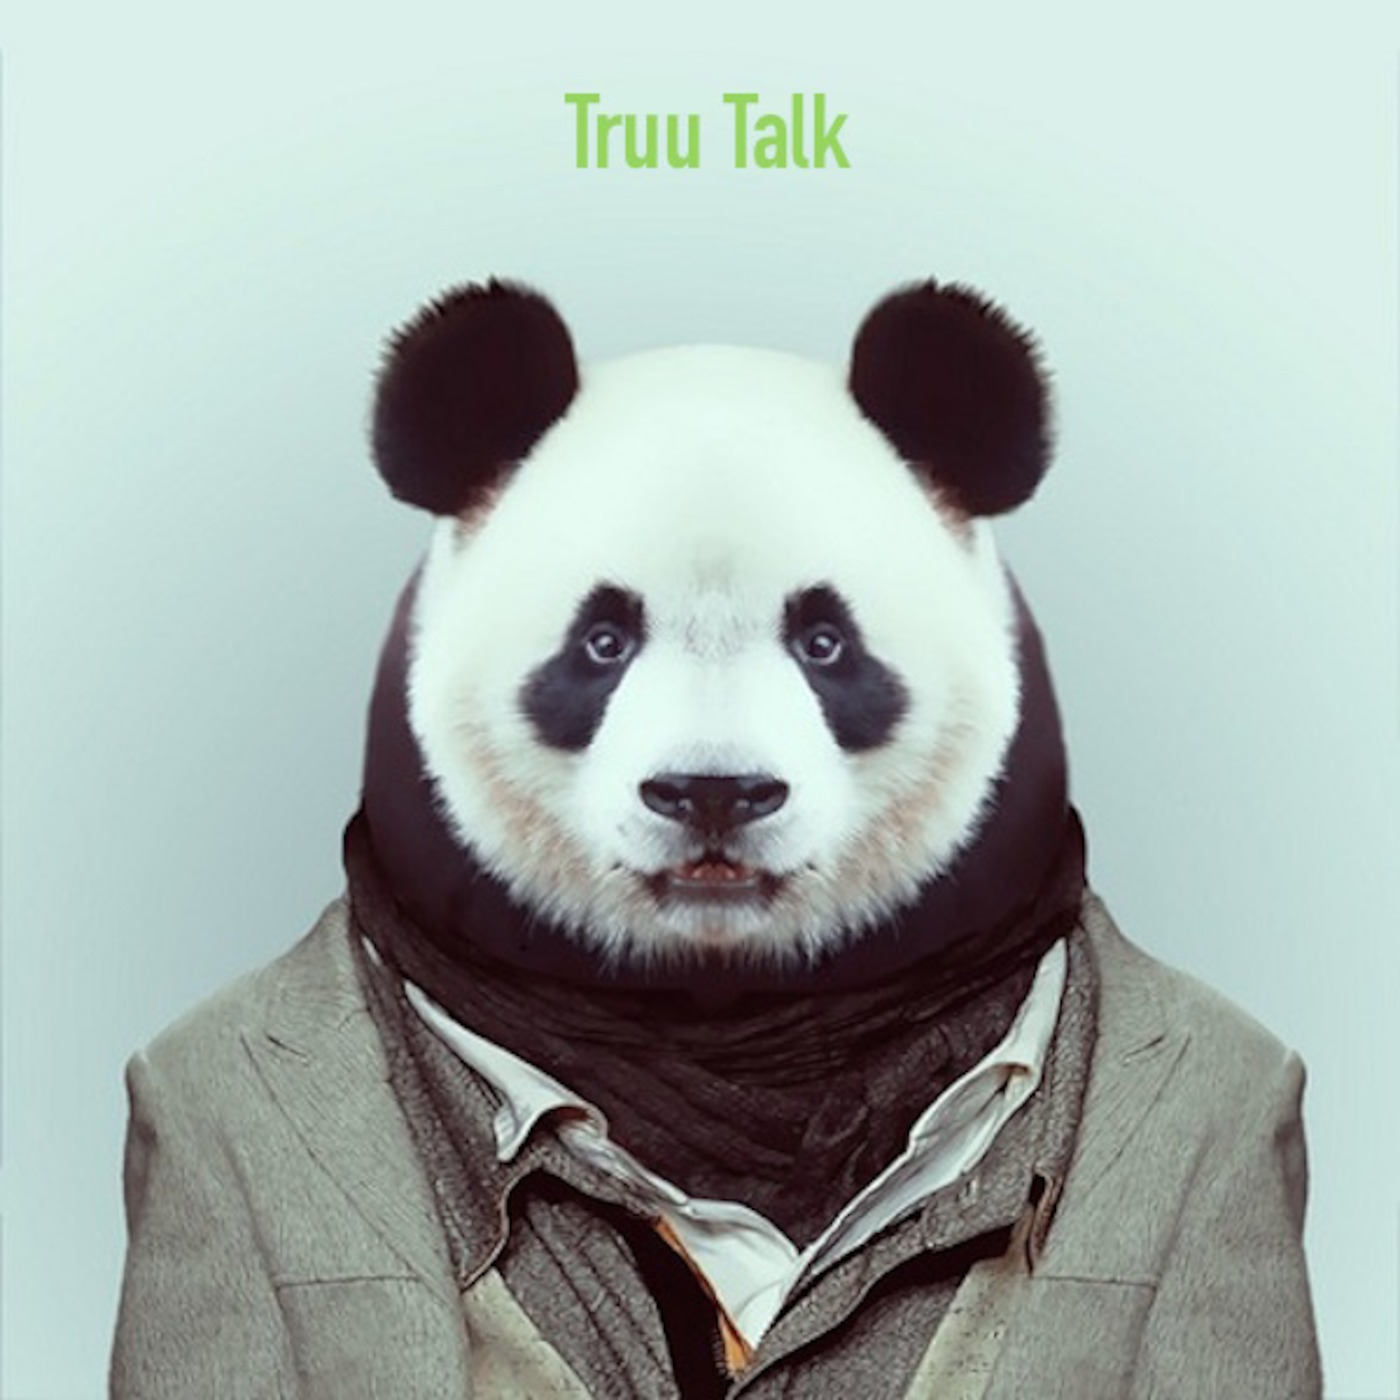 Truu Talk's Podcast